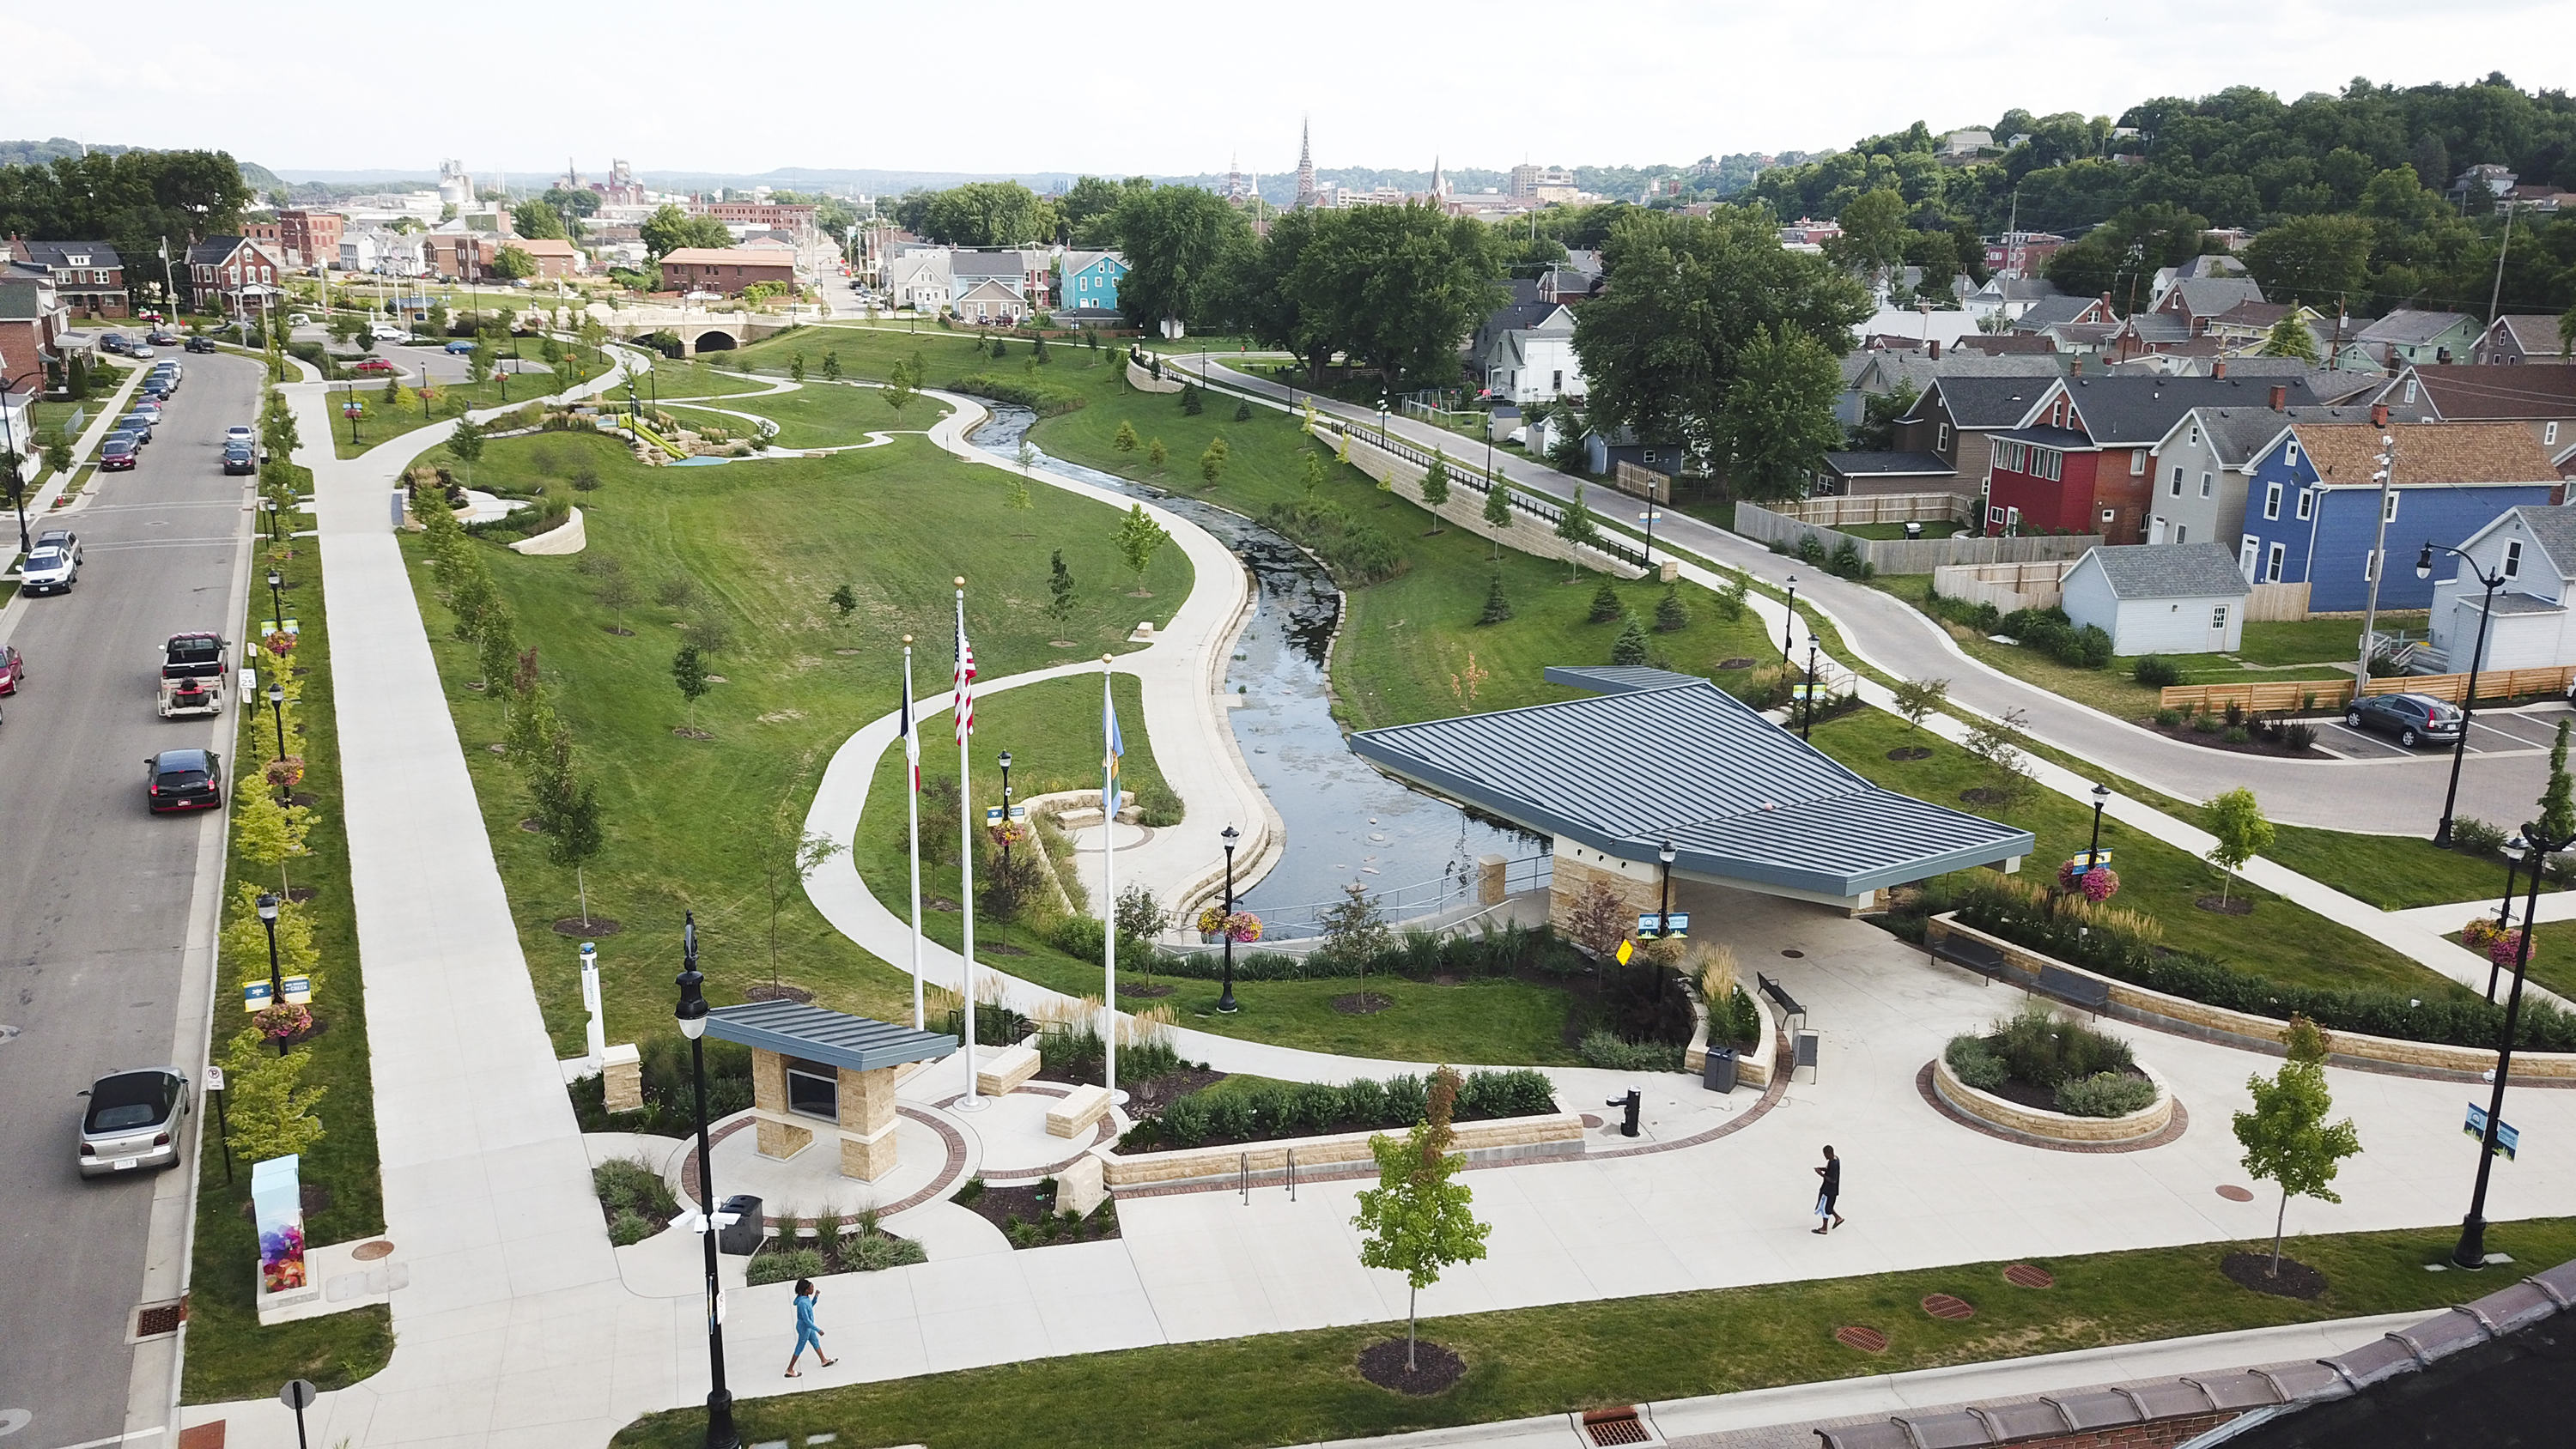 Oriented to overlook the Bee Branch Creek low-flow channel, the amphitheater embodies many of the project's goals and vision for multi-purpose, timeless spaces. The design team worked carefully to integrate accessible paths along with stairs and seating throughout the corridor.